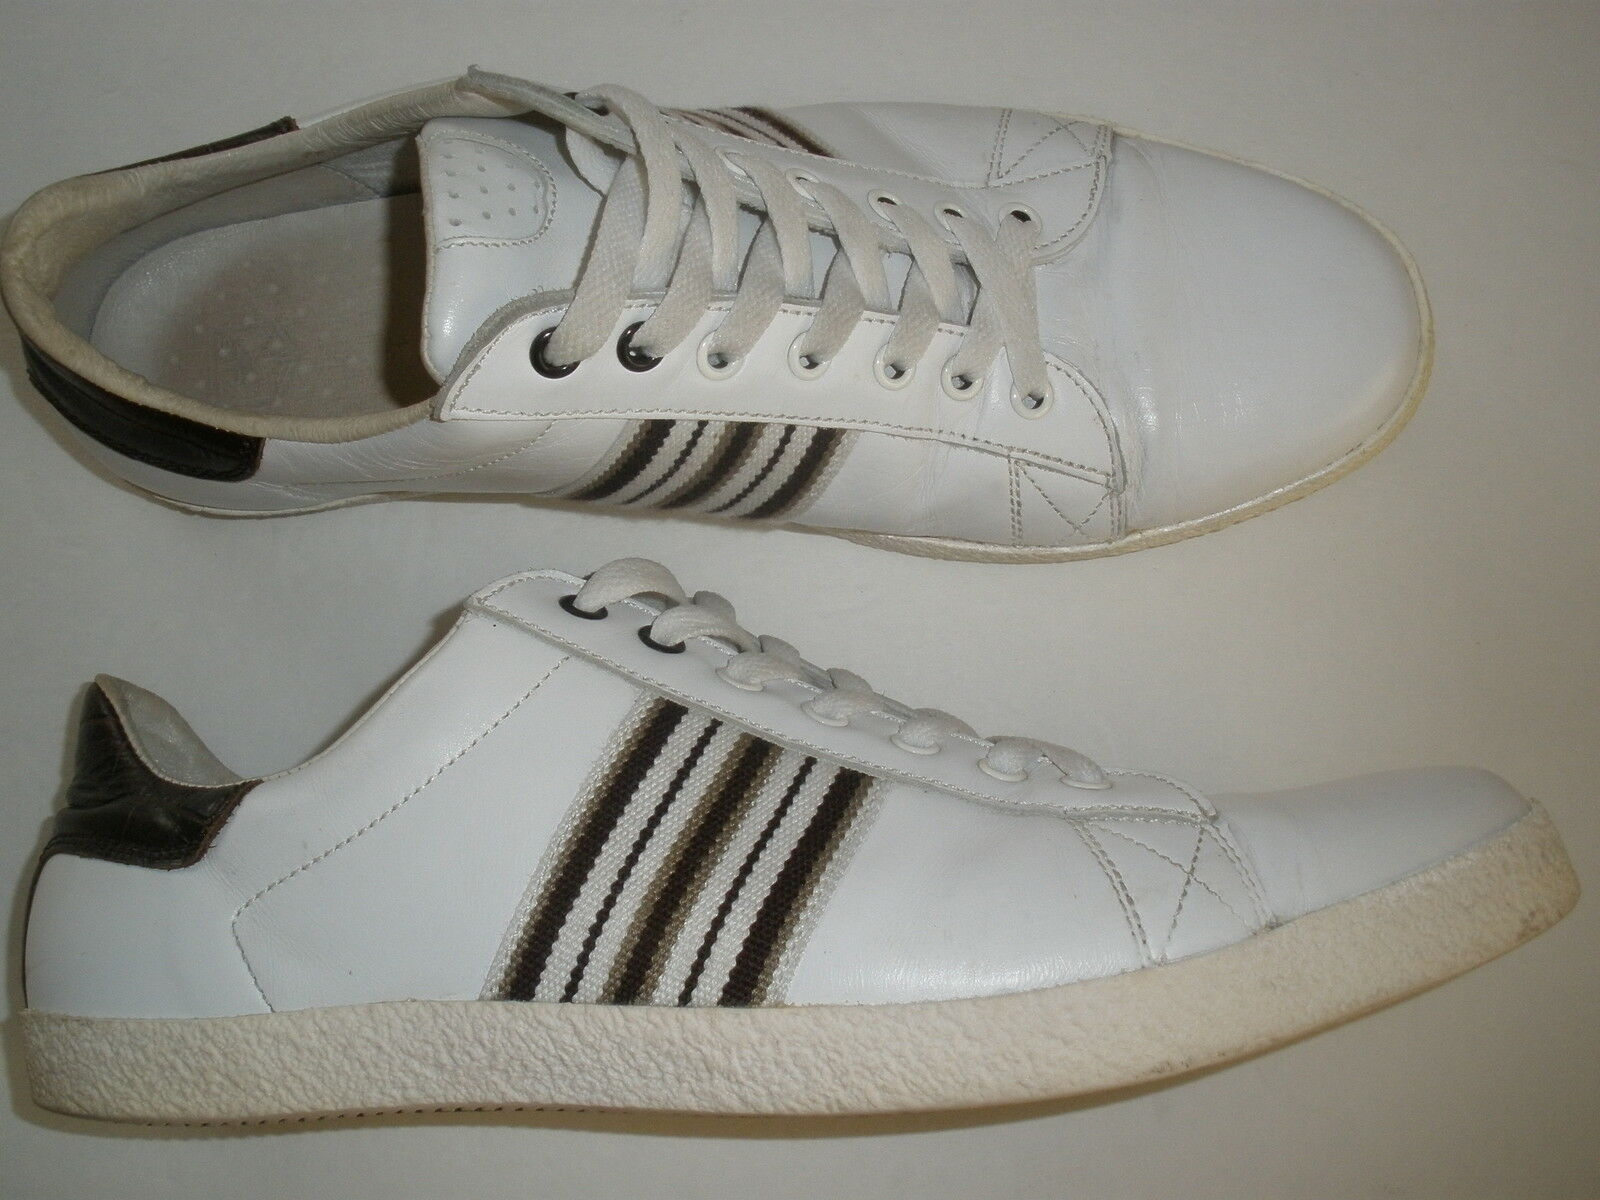 ZARA LEATHER SNEAKERS SNEAKERS SNEAKERS  US 12 SALE  UNIQUE HOT MADE IN SPAIN 0e27e5